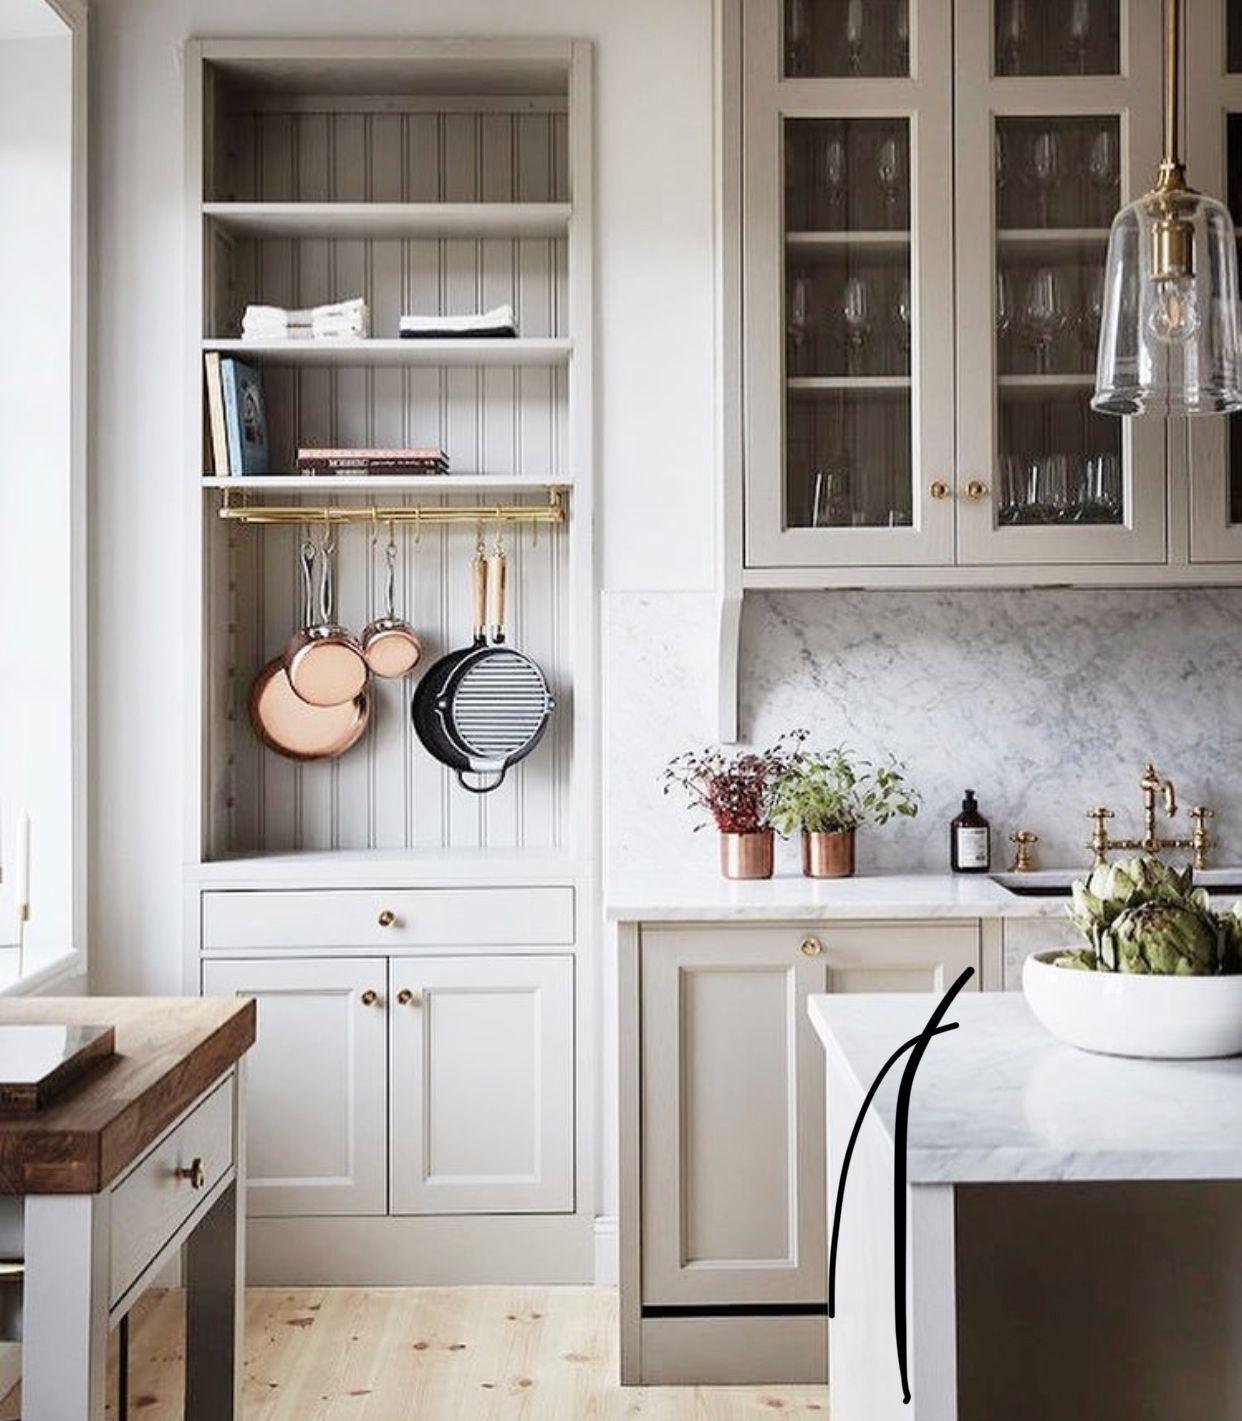 Pin By Hello Lovely Interior Design On Bathrooms Kitchen Renovation Kitchen Design Kitchen Interior